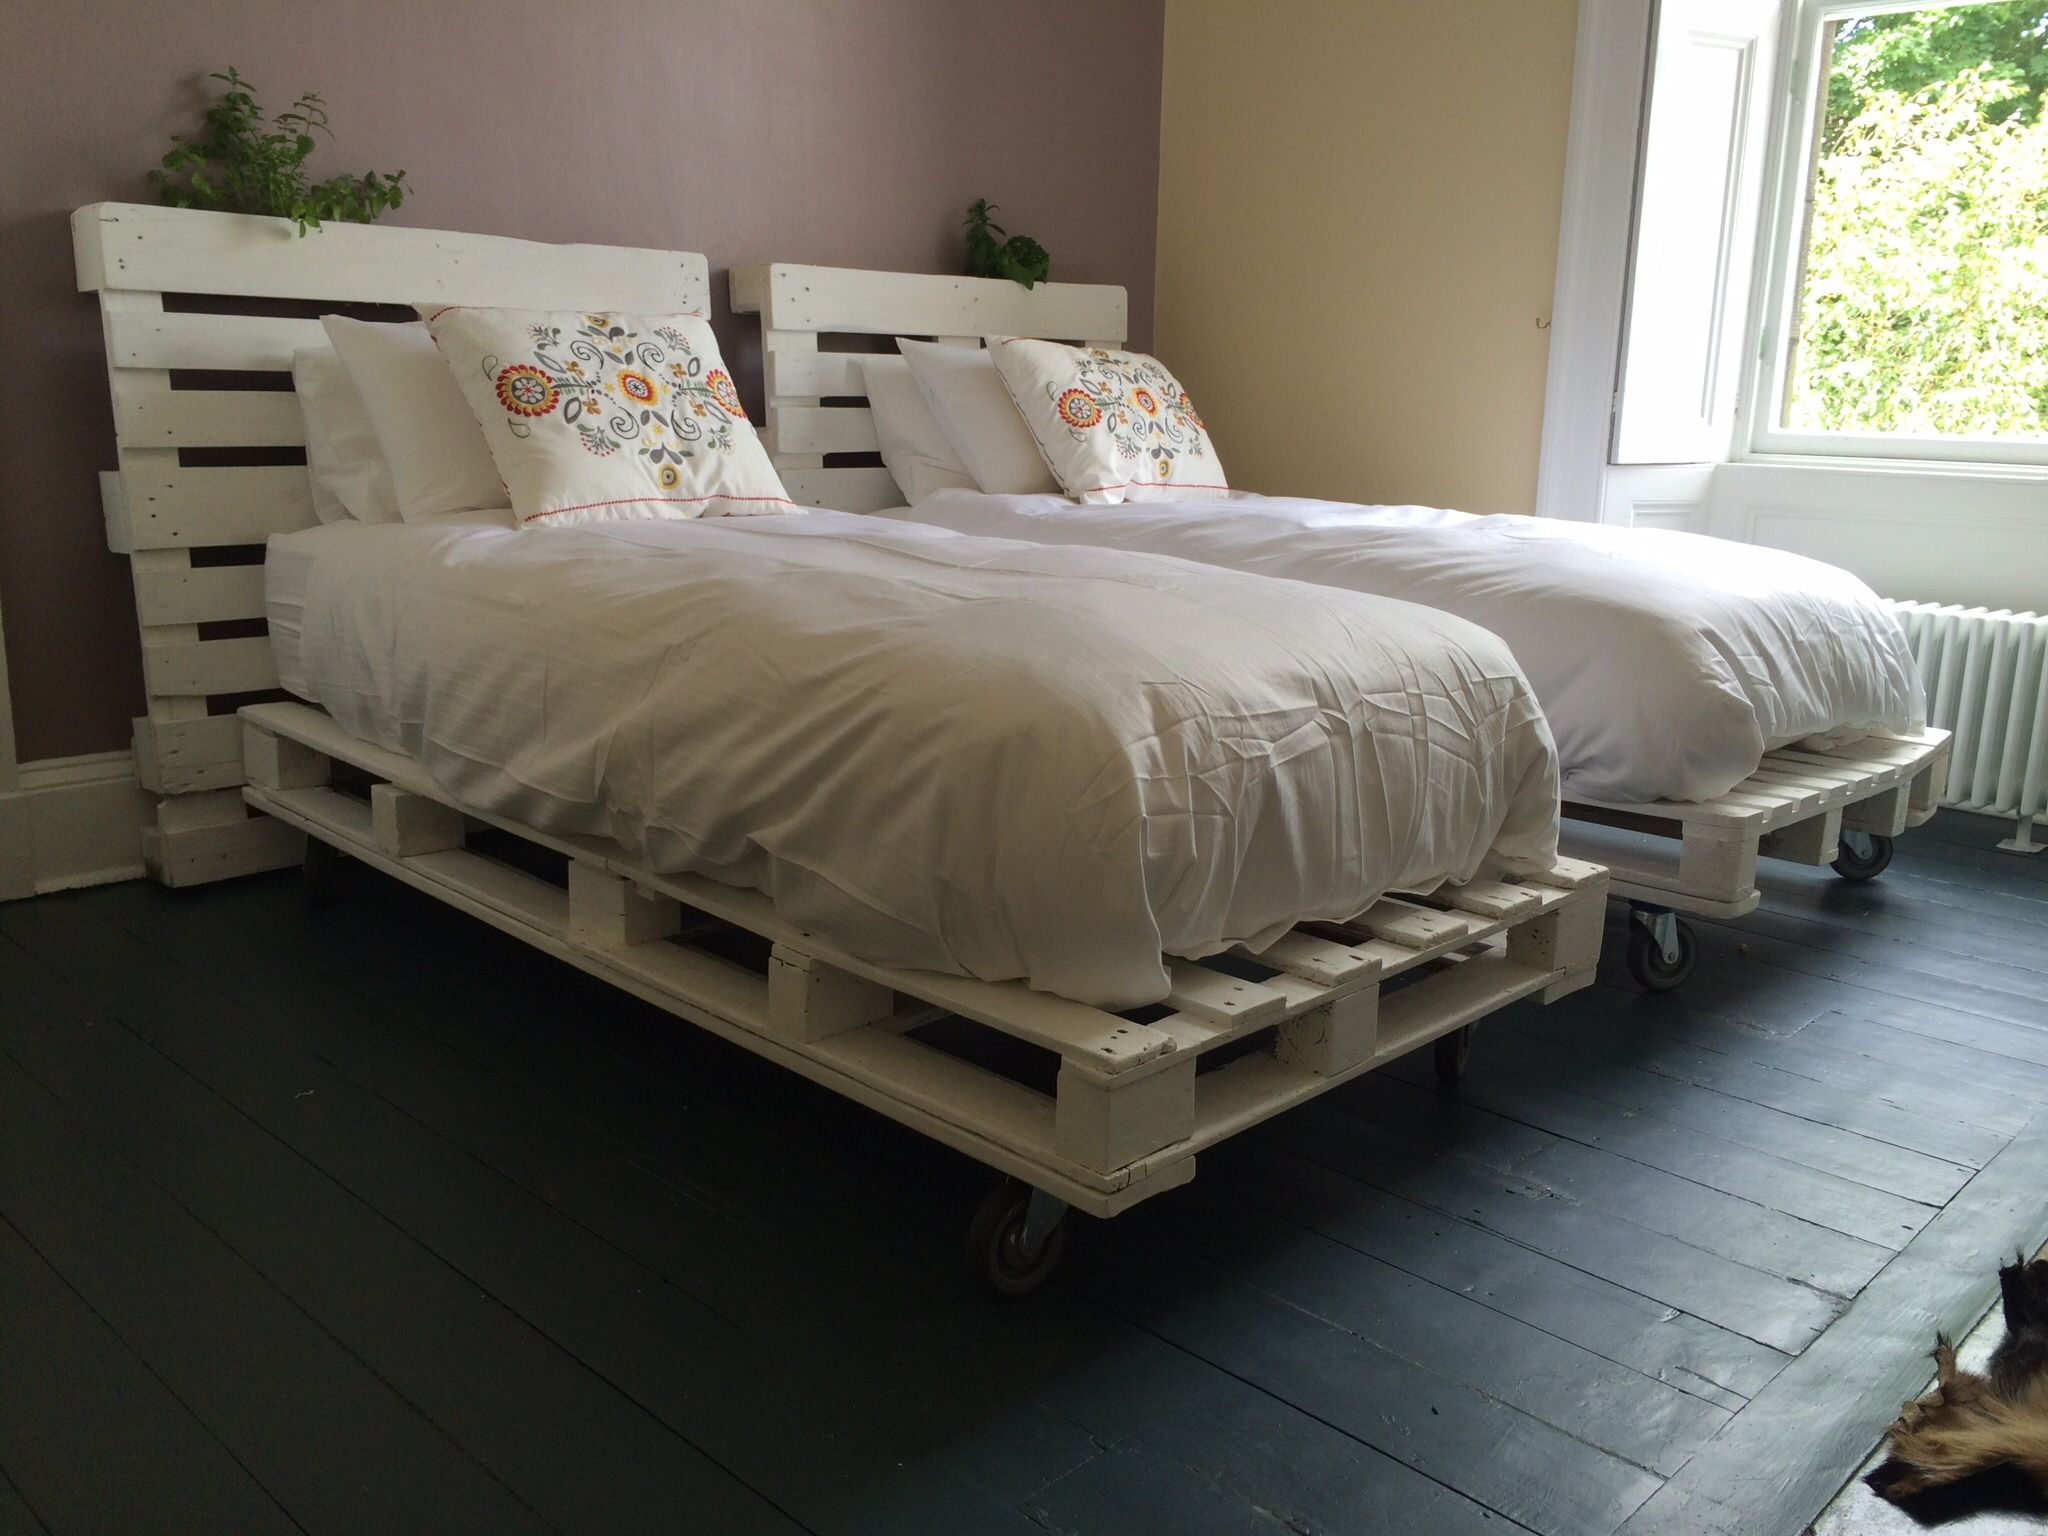 Single Bed Frames Made Out Of Pallets Pallet Bed Frames Diy Pallet Bed Wooden Pallet Beds